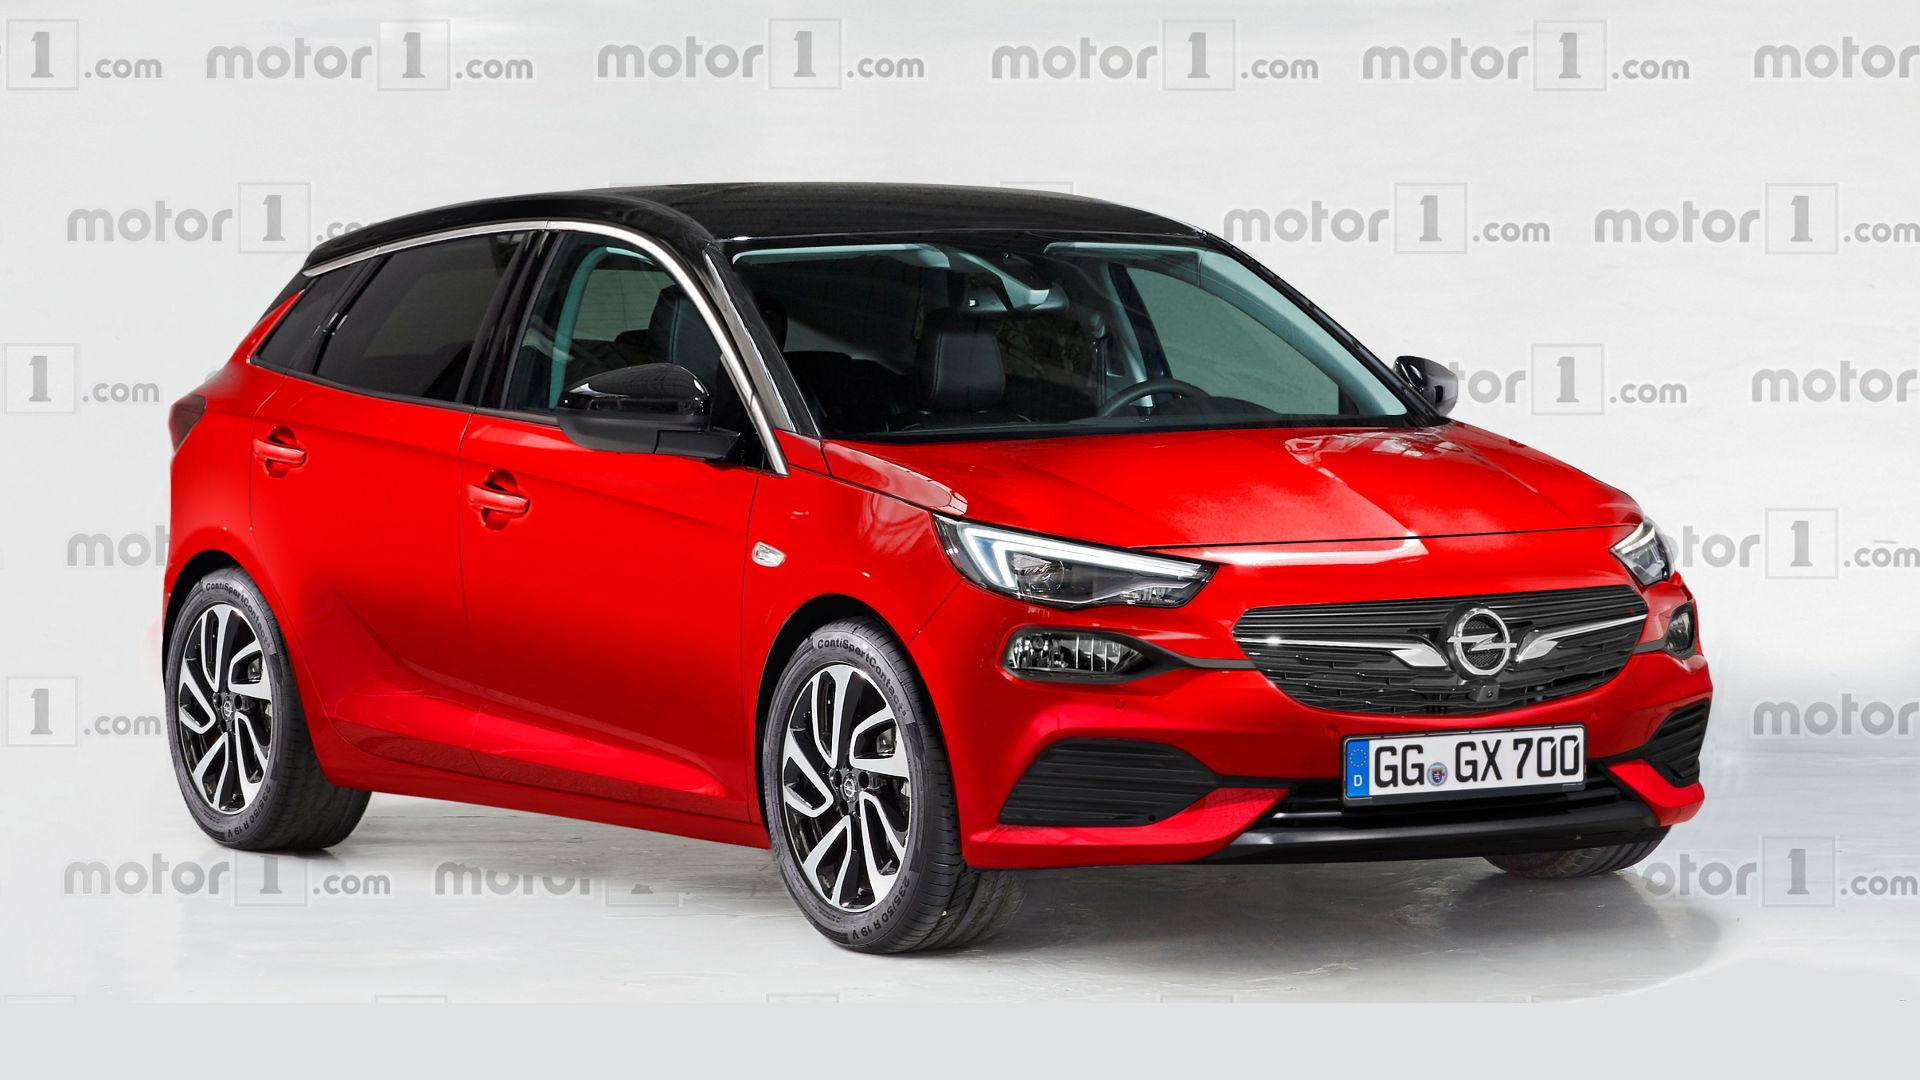 2019 Opel Corsa Render Illustrates A More Stylish Design